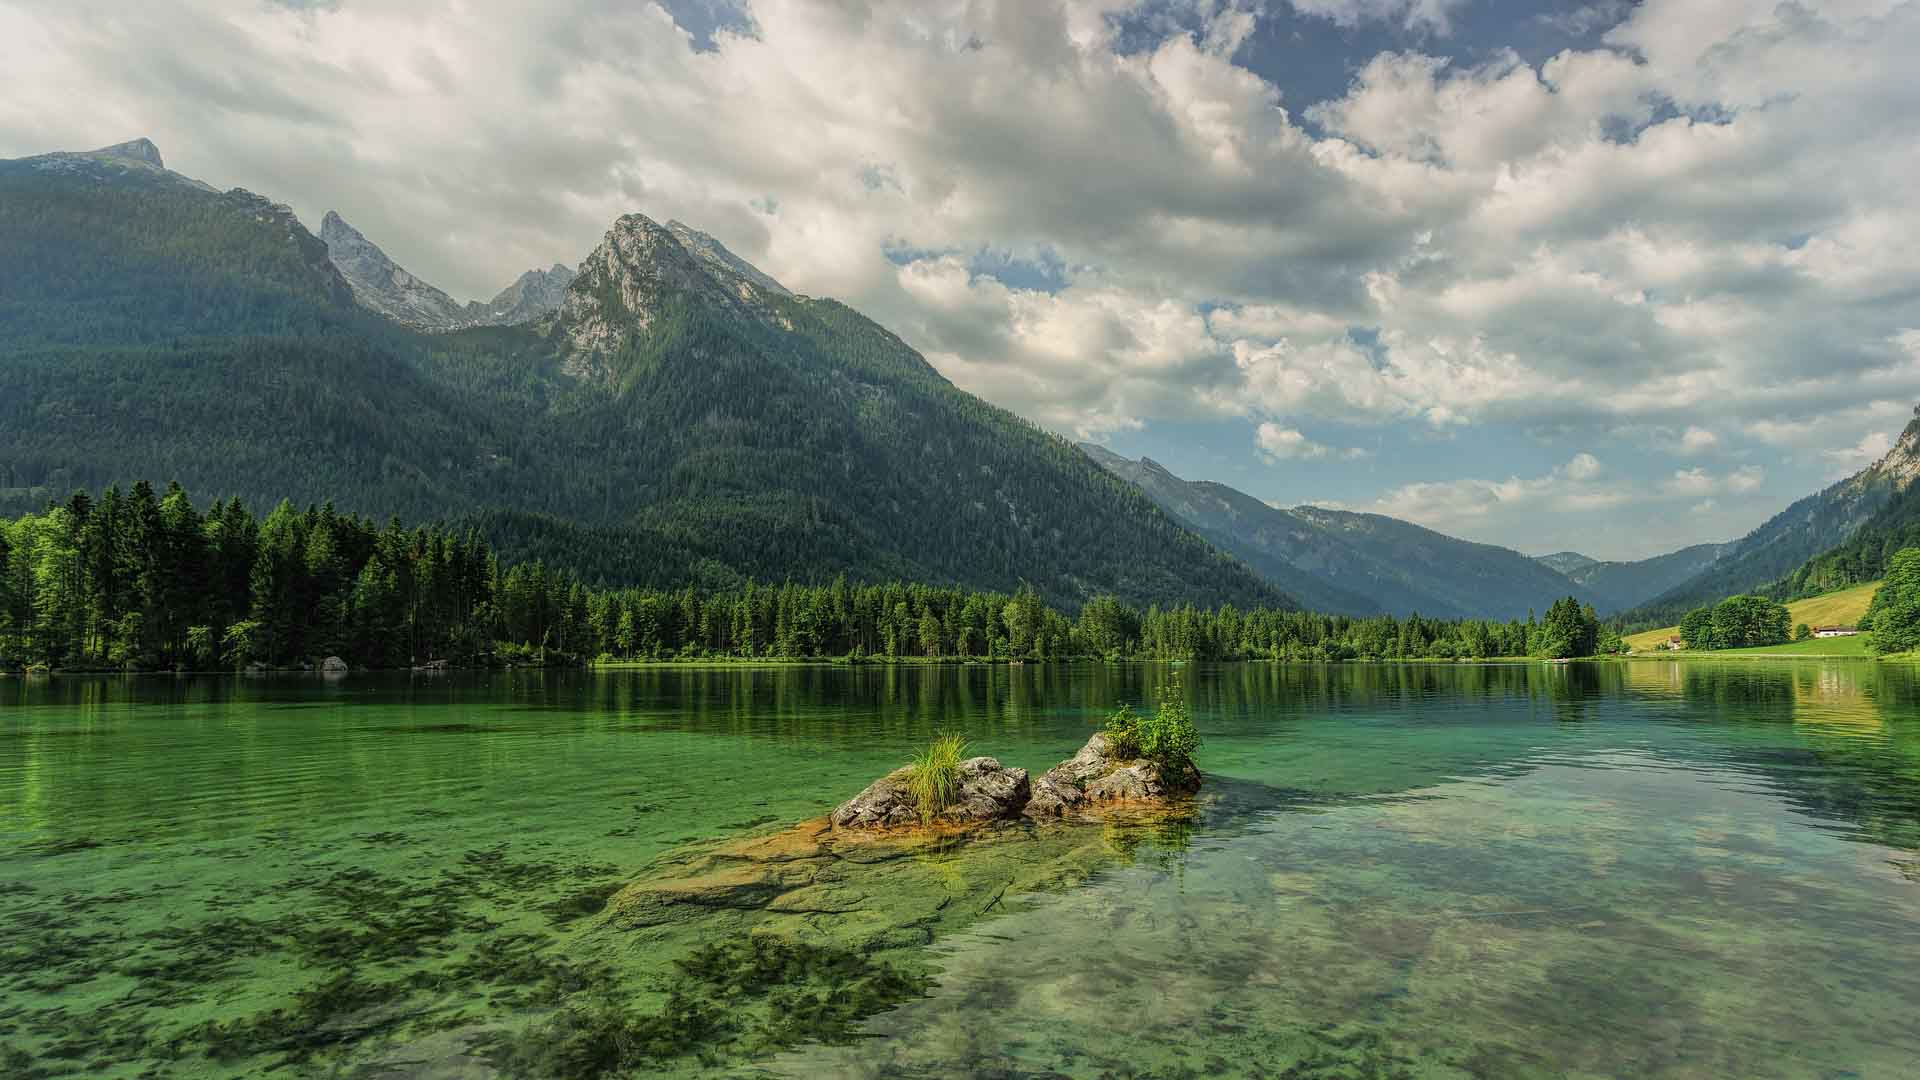 Beautiful picture of a lake with mountains behind it eco-friendly climber